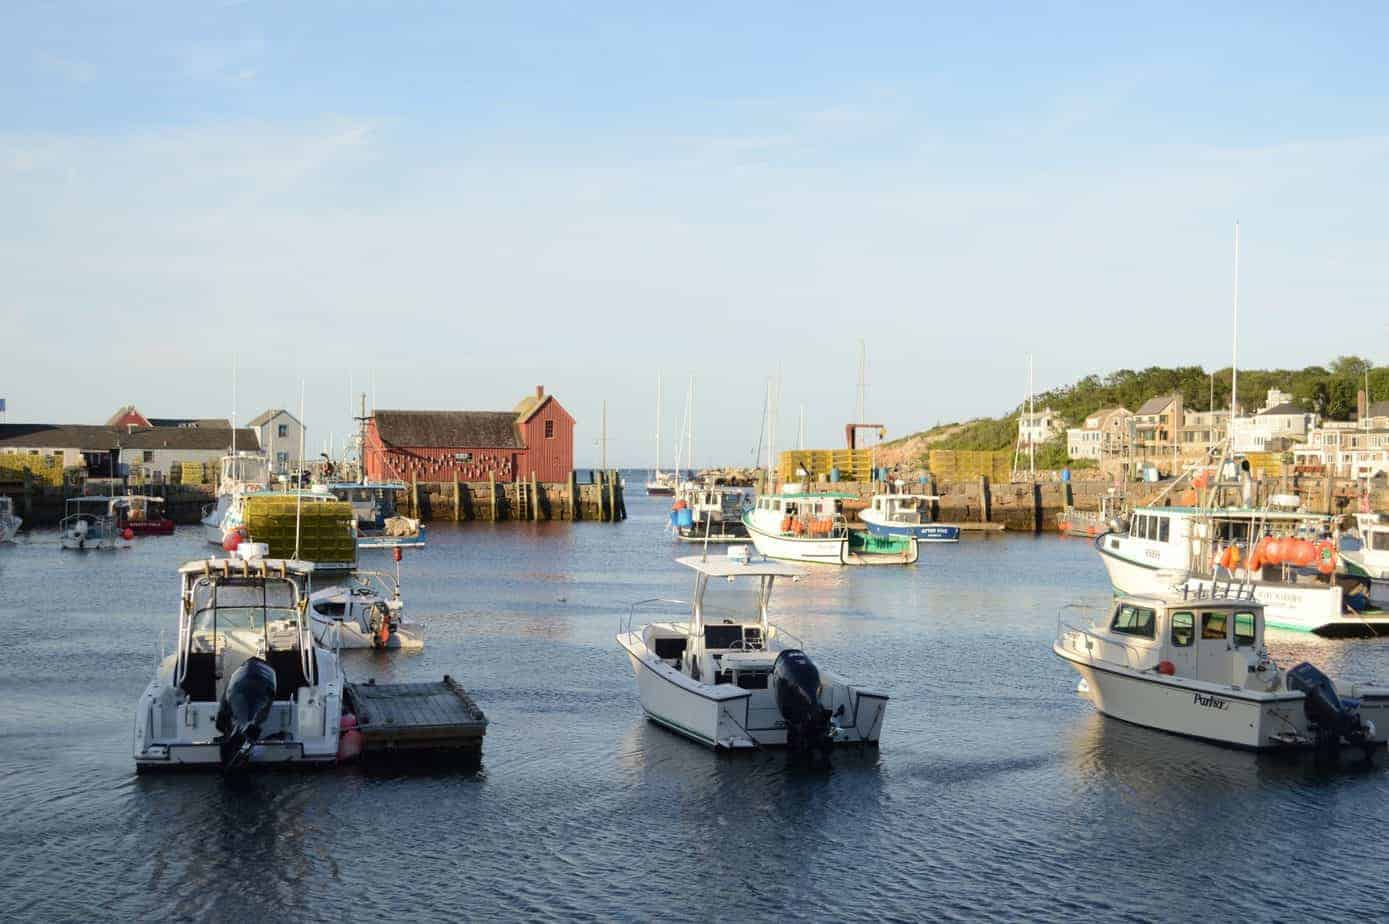 top things to do in rockport ma - image of harbor full of boats, water is calm, a red fish shack is prominent in the background